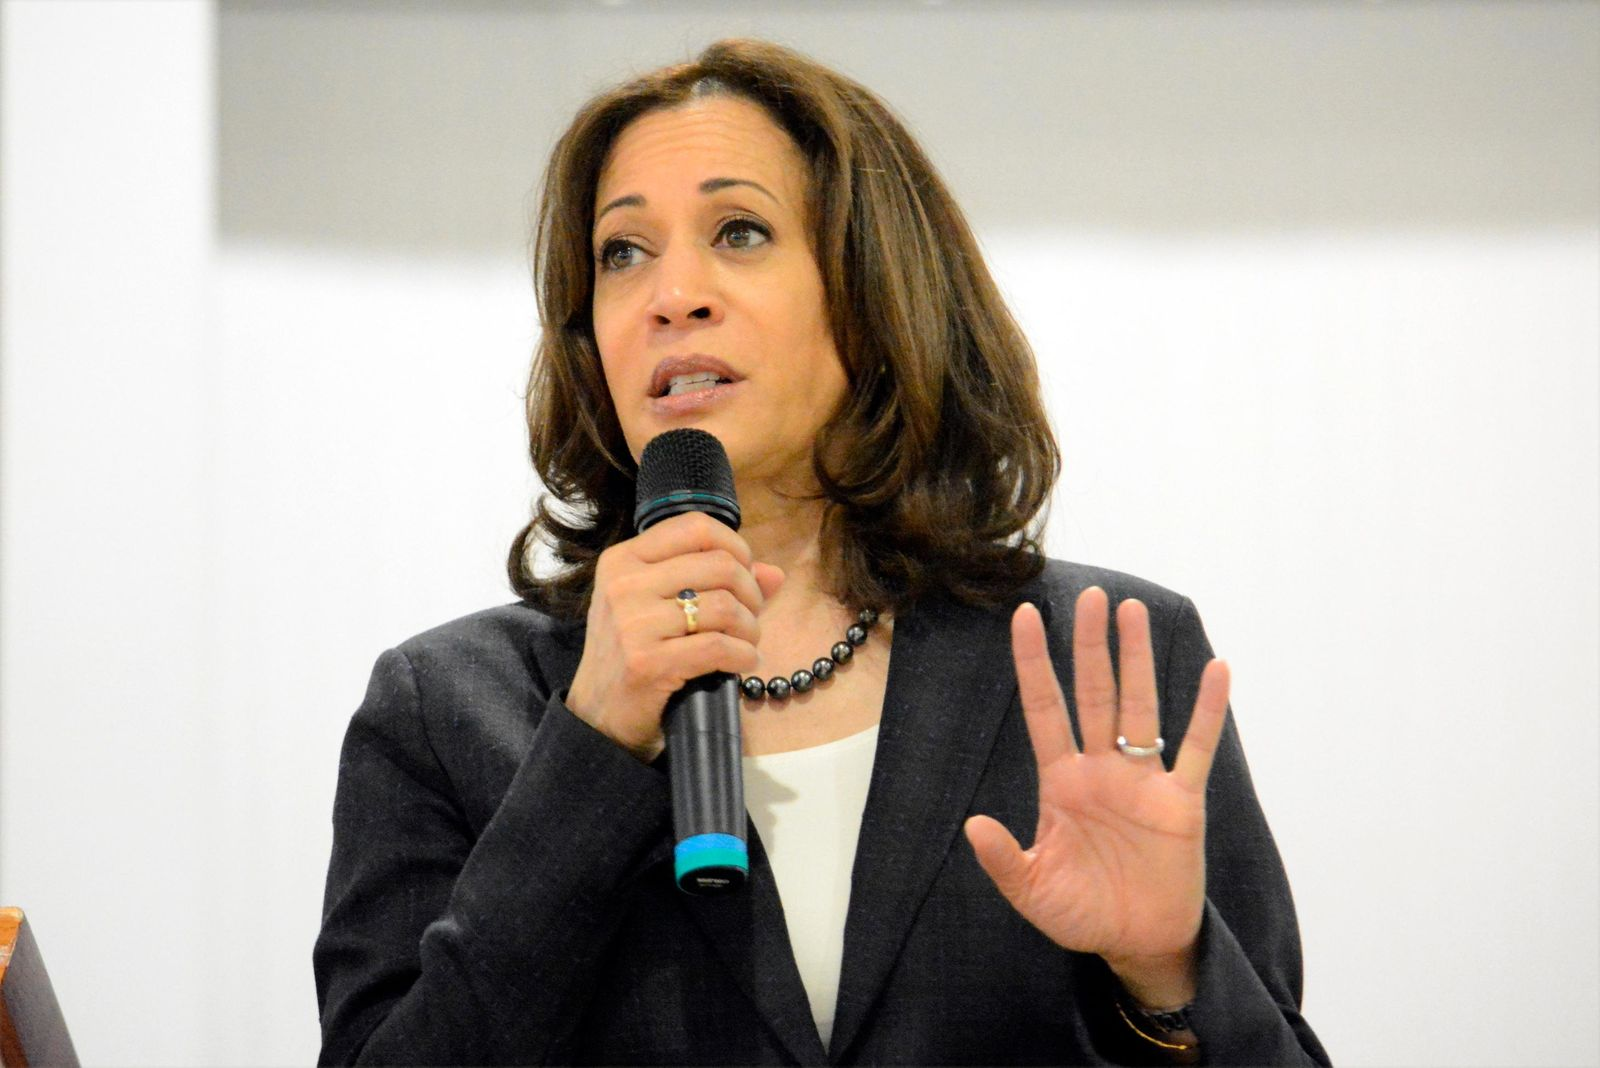 In this March 9, 2019, photo, Sen. Kamala Harris, D-Calif., speaks during an event in St. George, S.C. Elizabeth Warren is betting voters are looking for a policy guru. Harris thinks they want a candidate who moves them with a personal story. As they roll out their president campaigns, the two senators are field-testing dramatically different theories about how to connect to with electorate.  (AP Photo/Meg Kinnard)